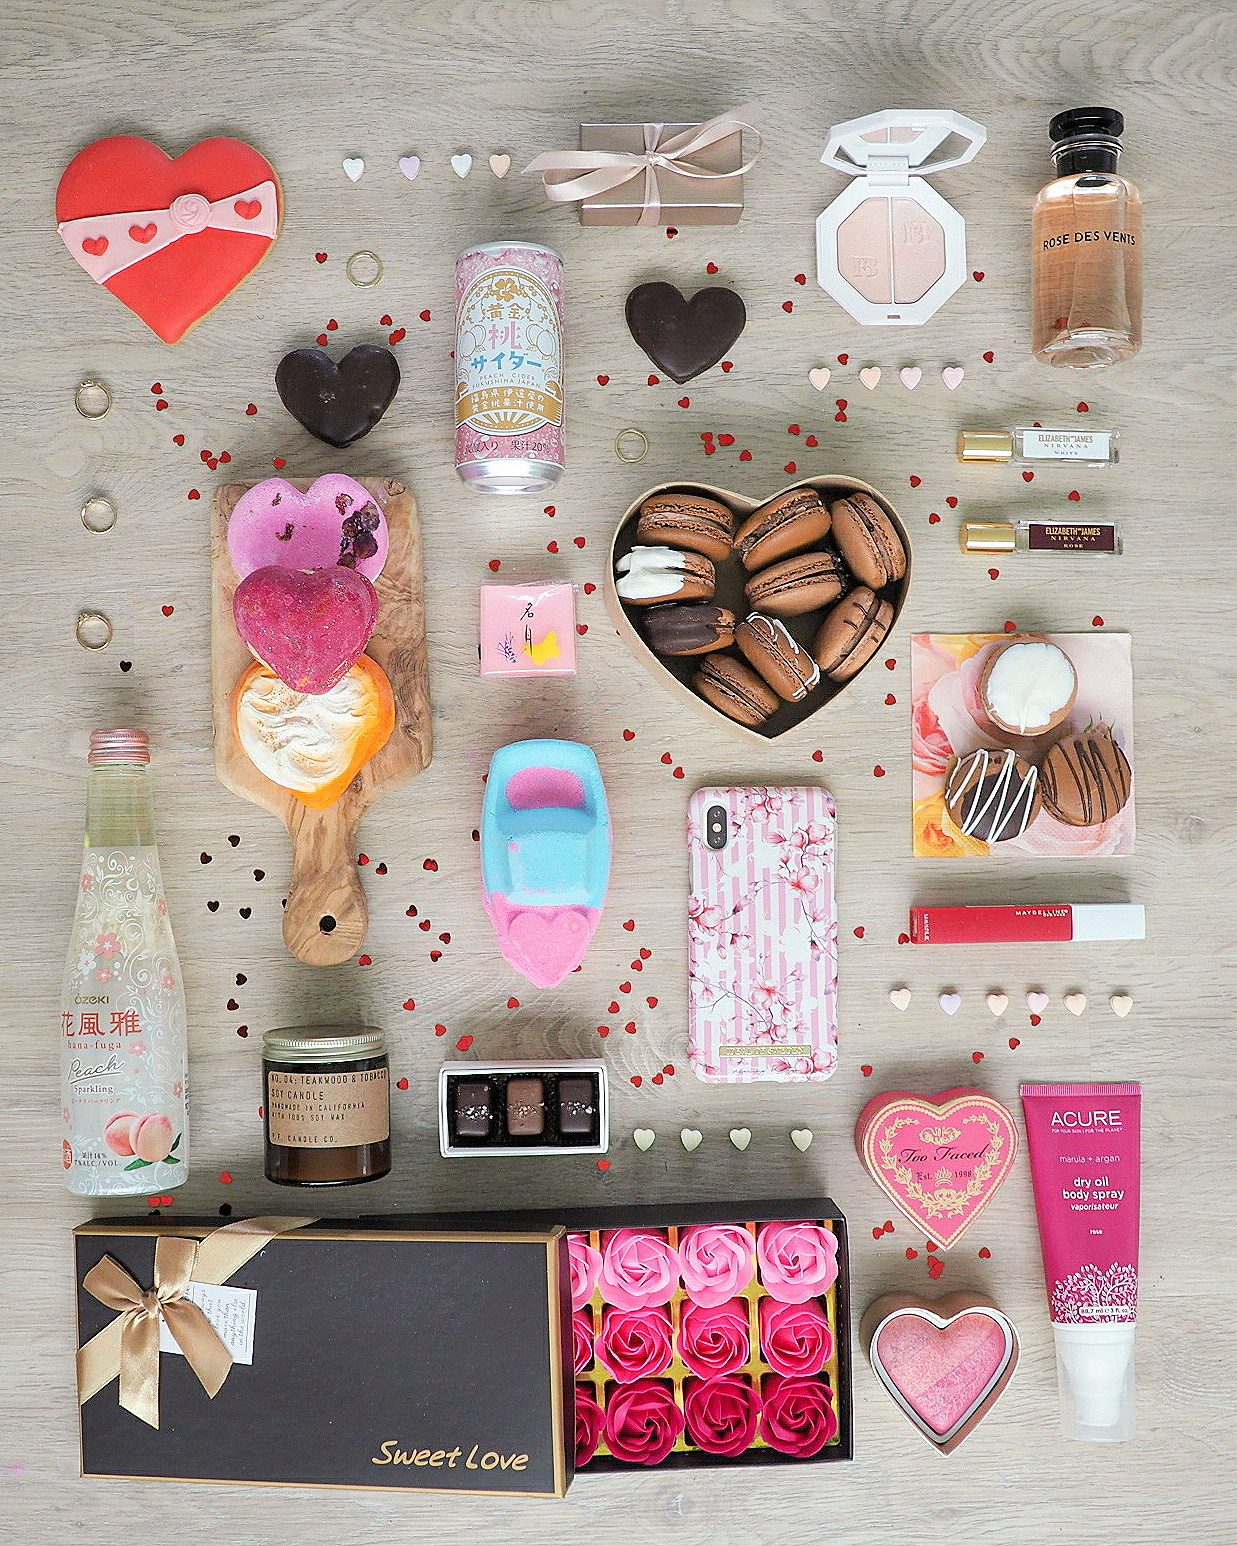 seattle blogger lifestyle beauty lush chocolate macarons frans sweet love